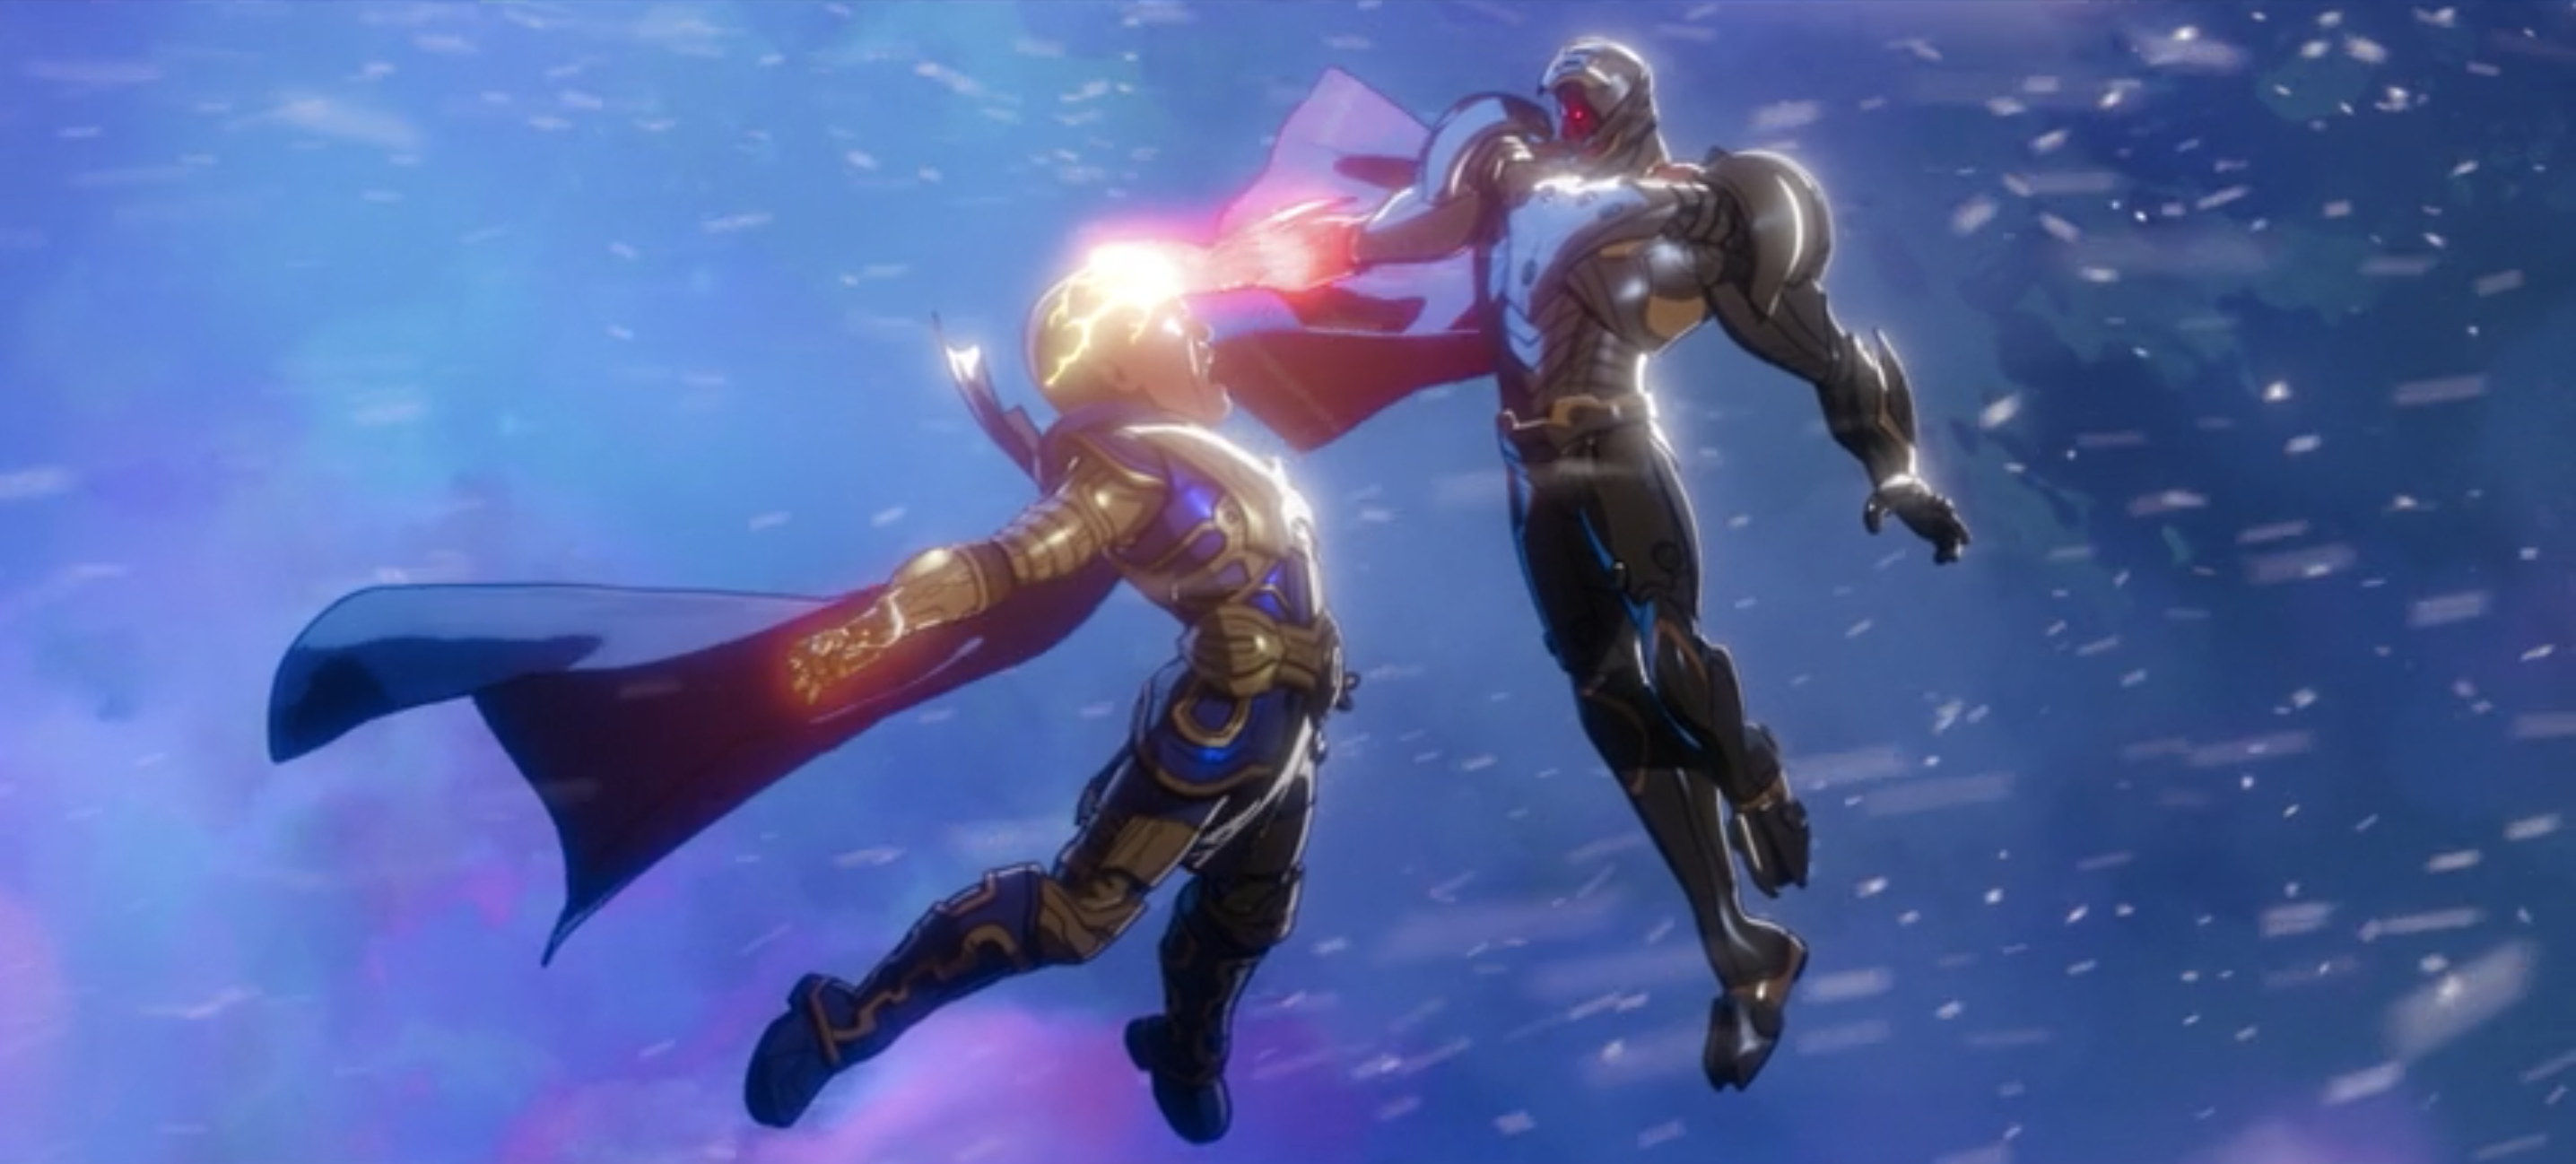 Watcher battles Ultron in Marvel's What If...?